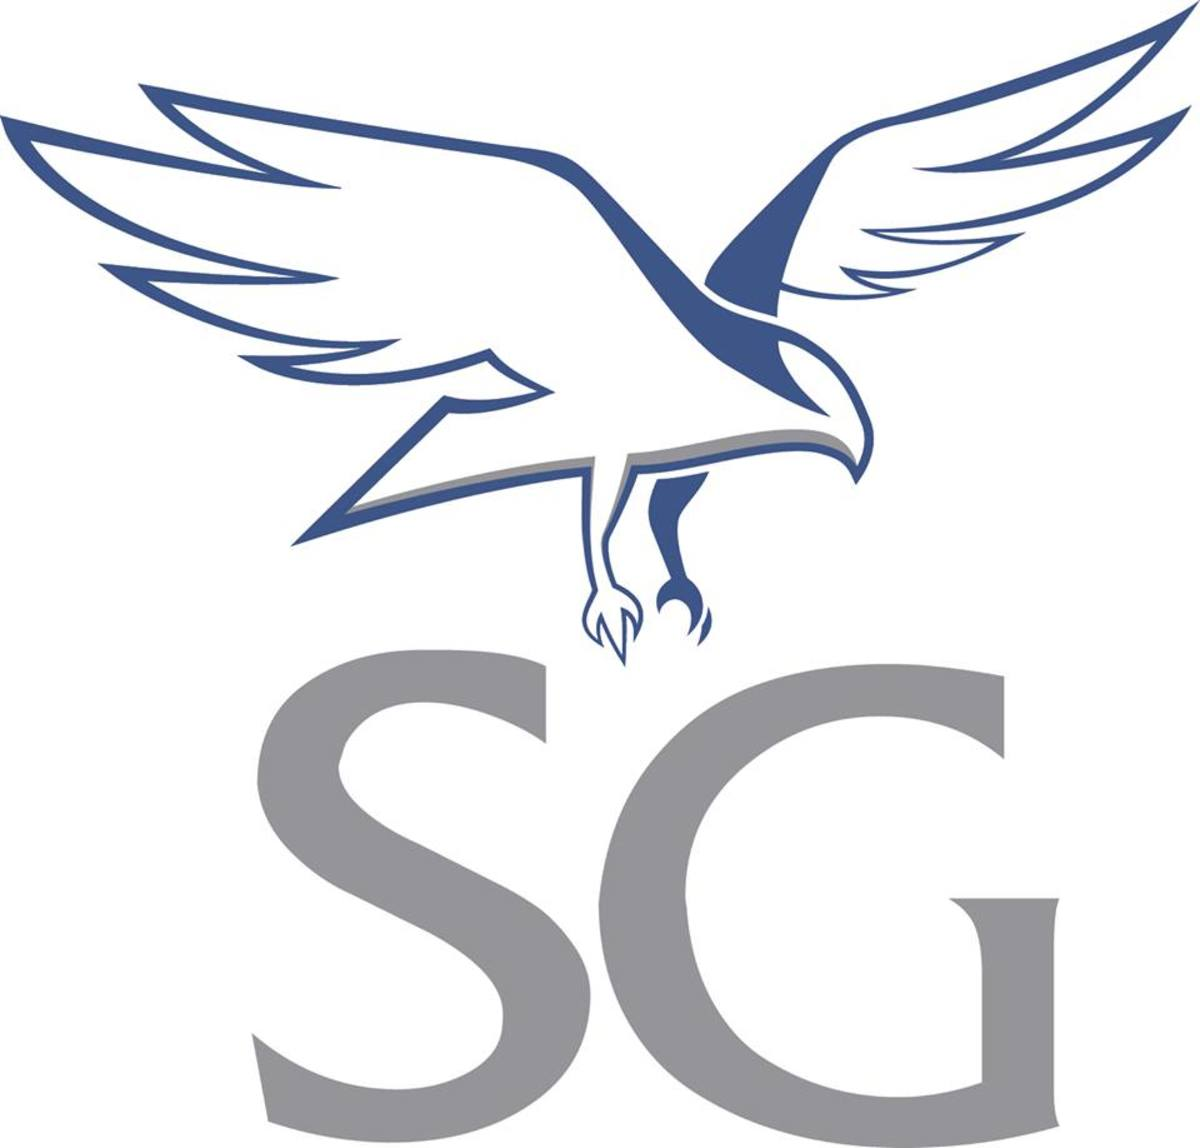 SG Faces Hiring Difficulty and Analyzes Student Surveys